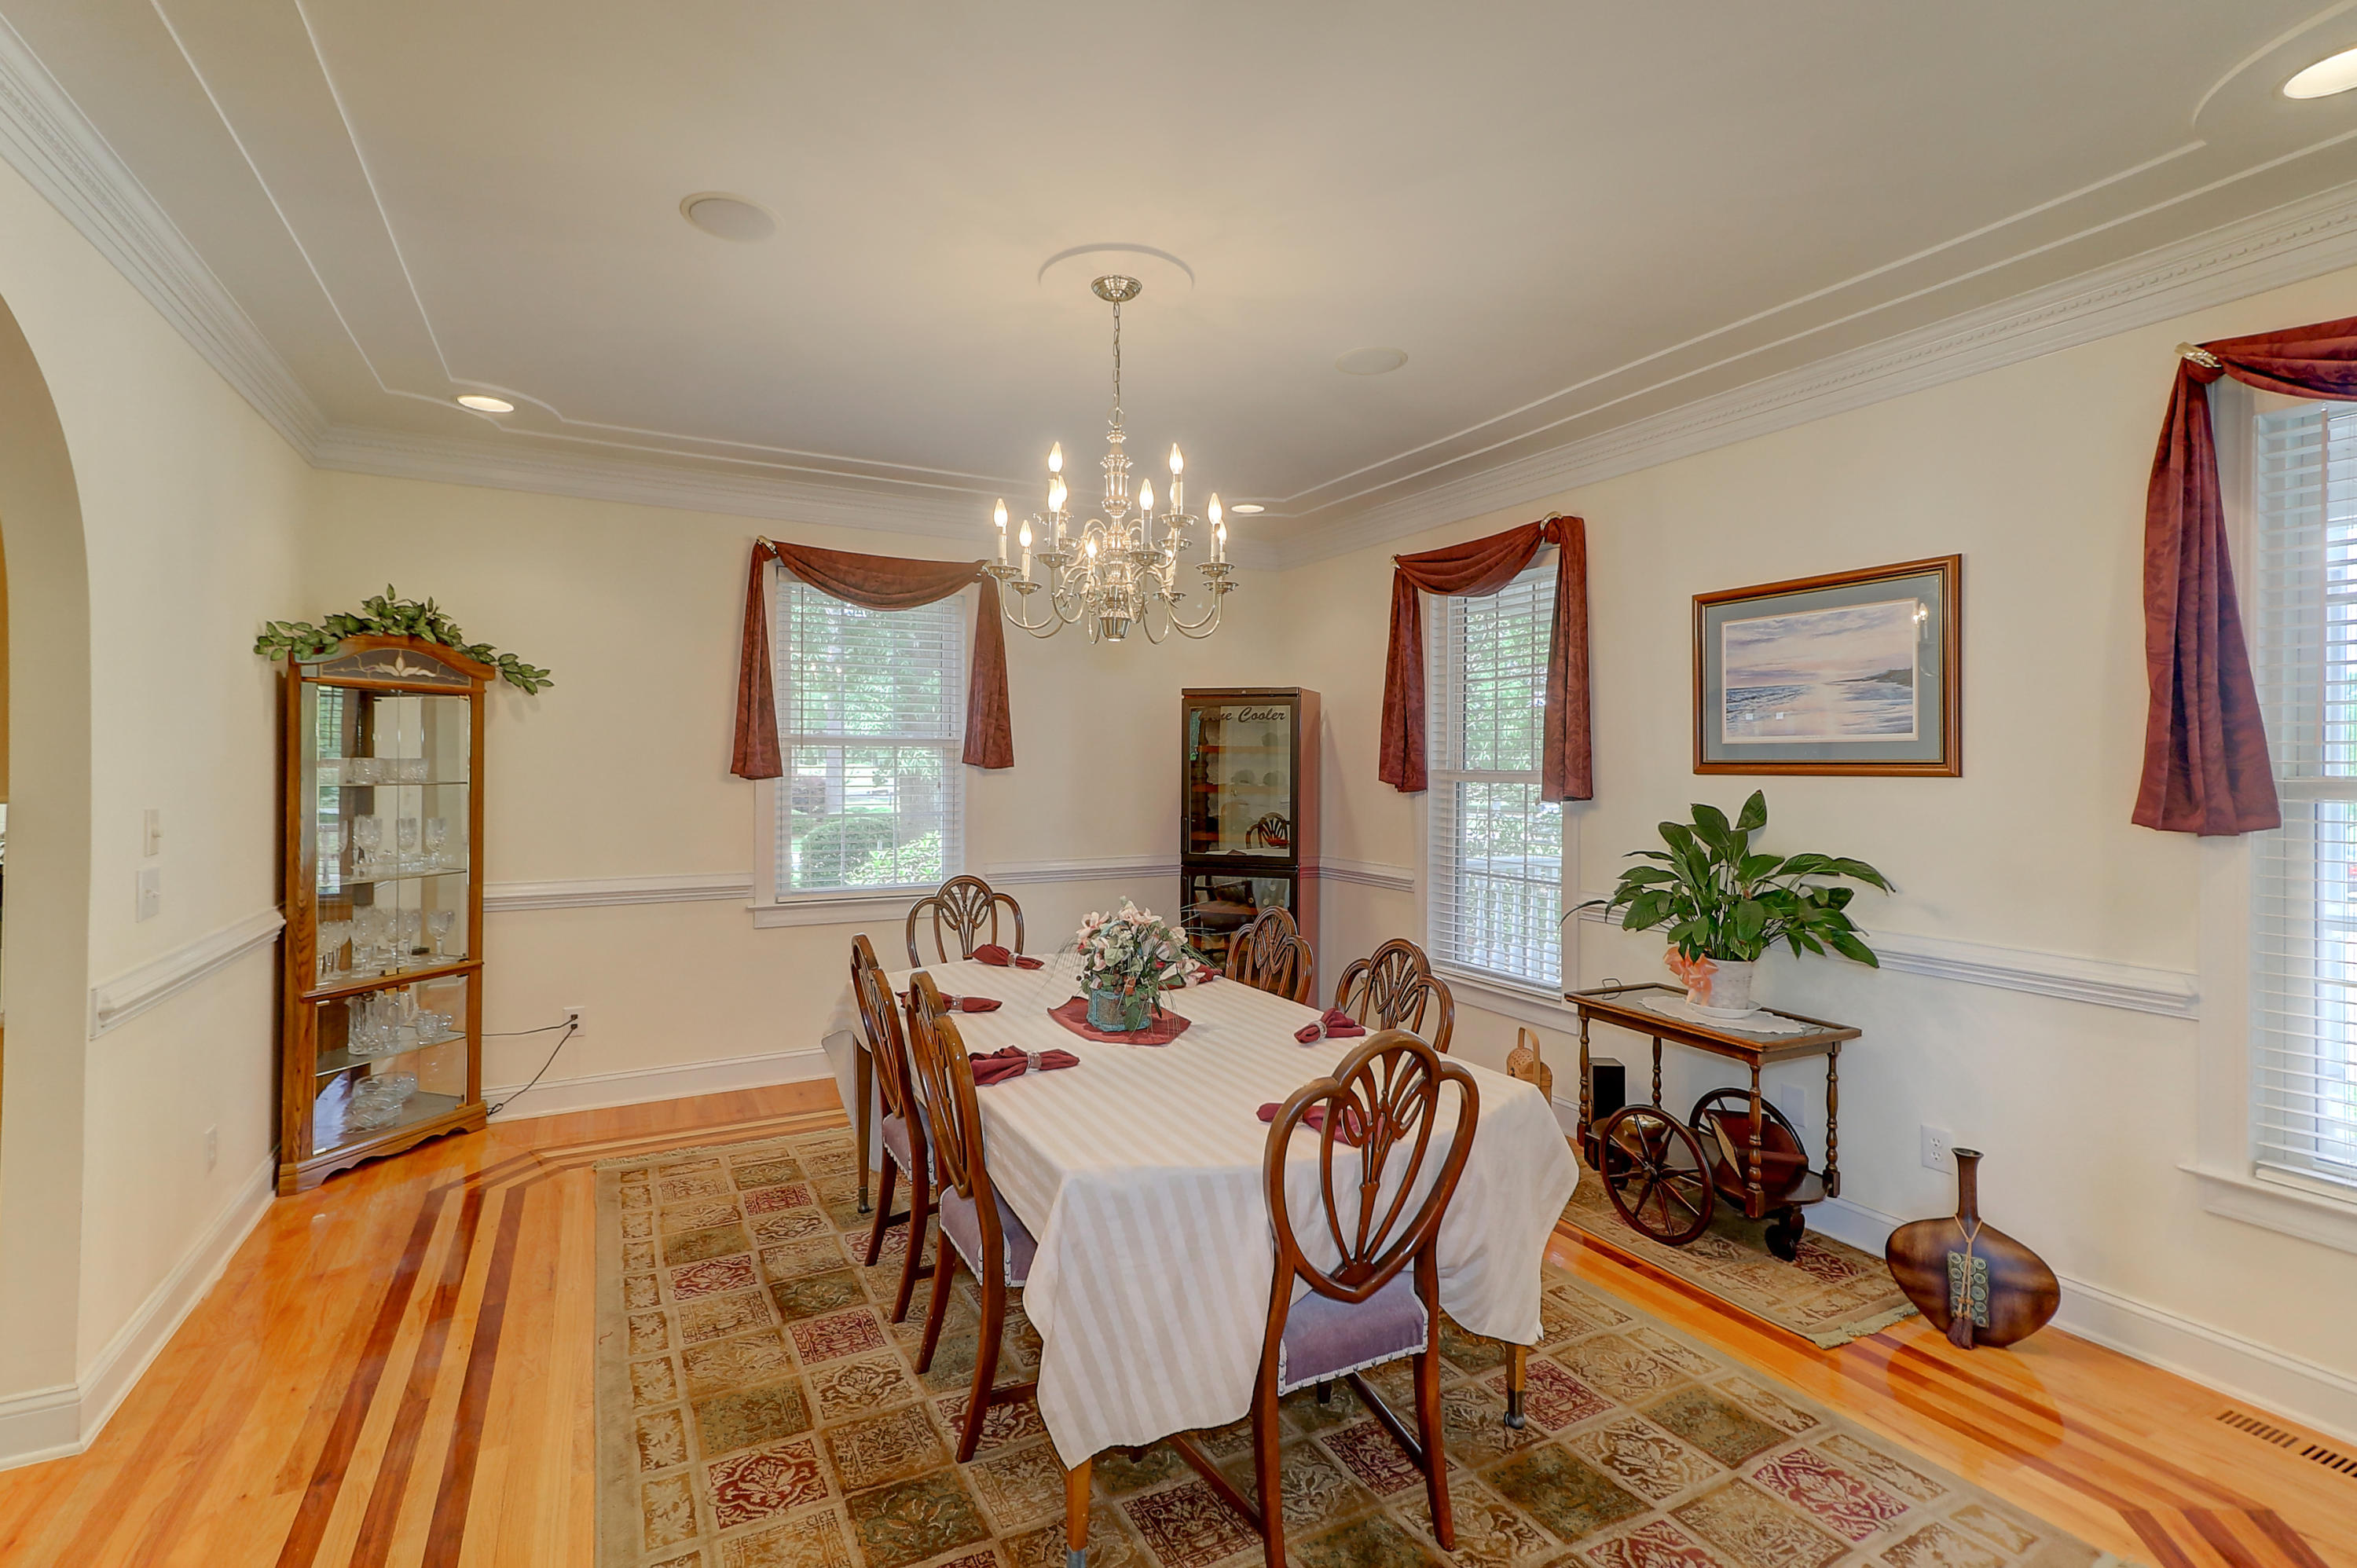 Coosaw Creek Country Club Homes For Sale - 8700 Fairway Woods, North Charleston, SC - 31